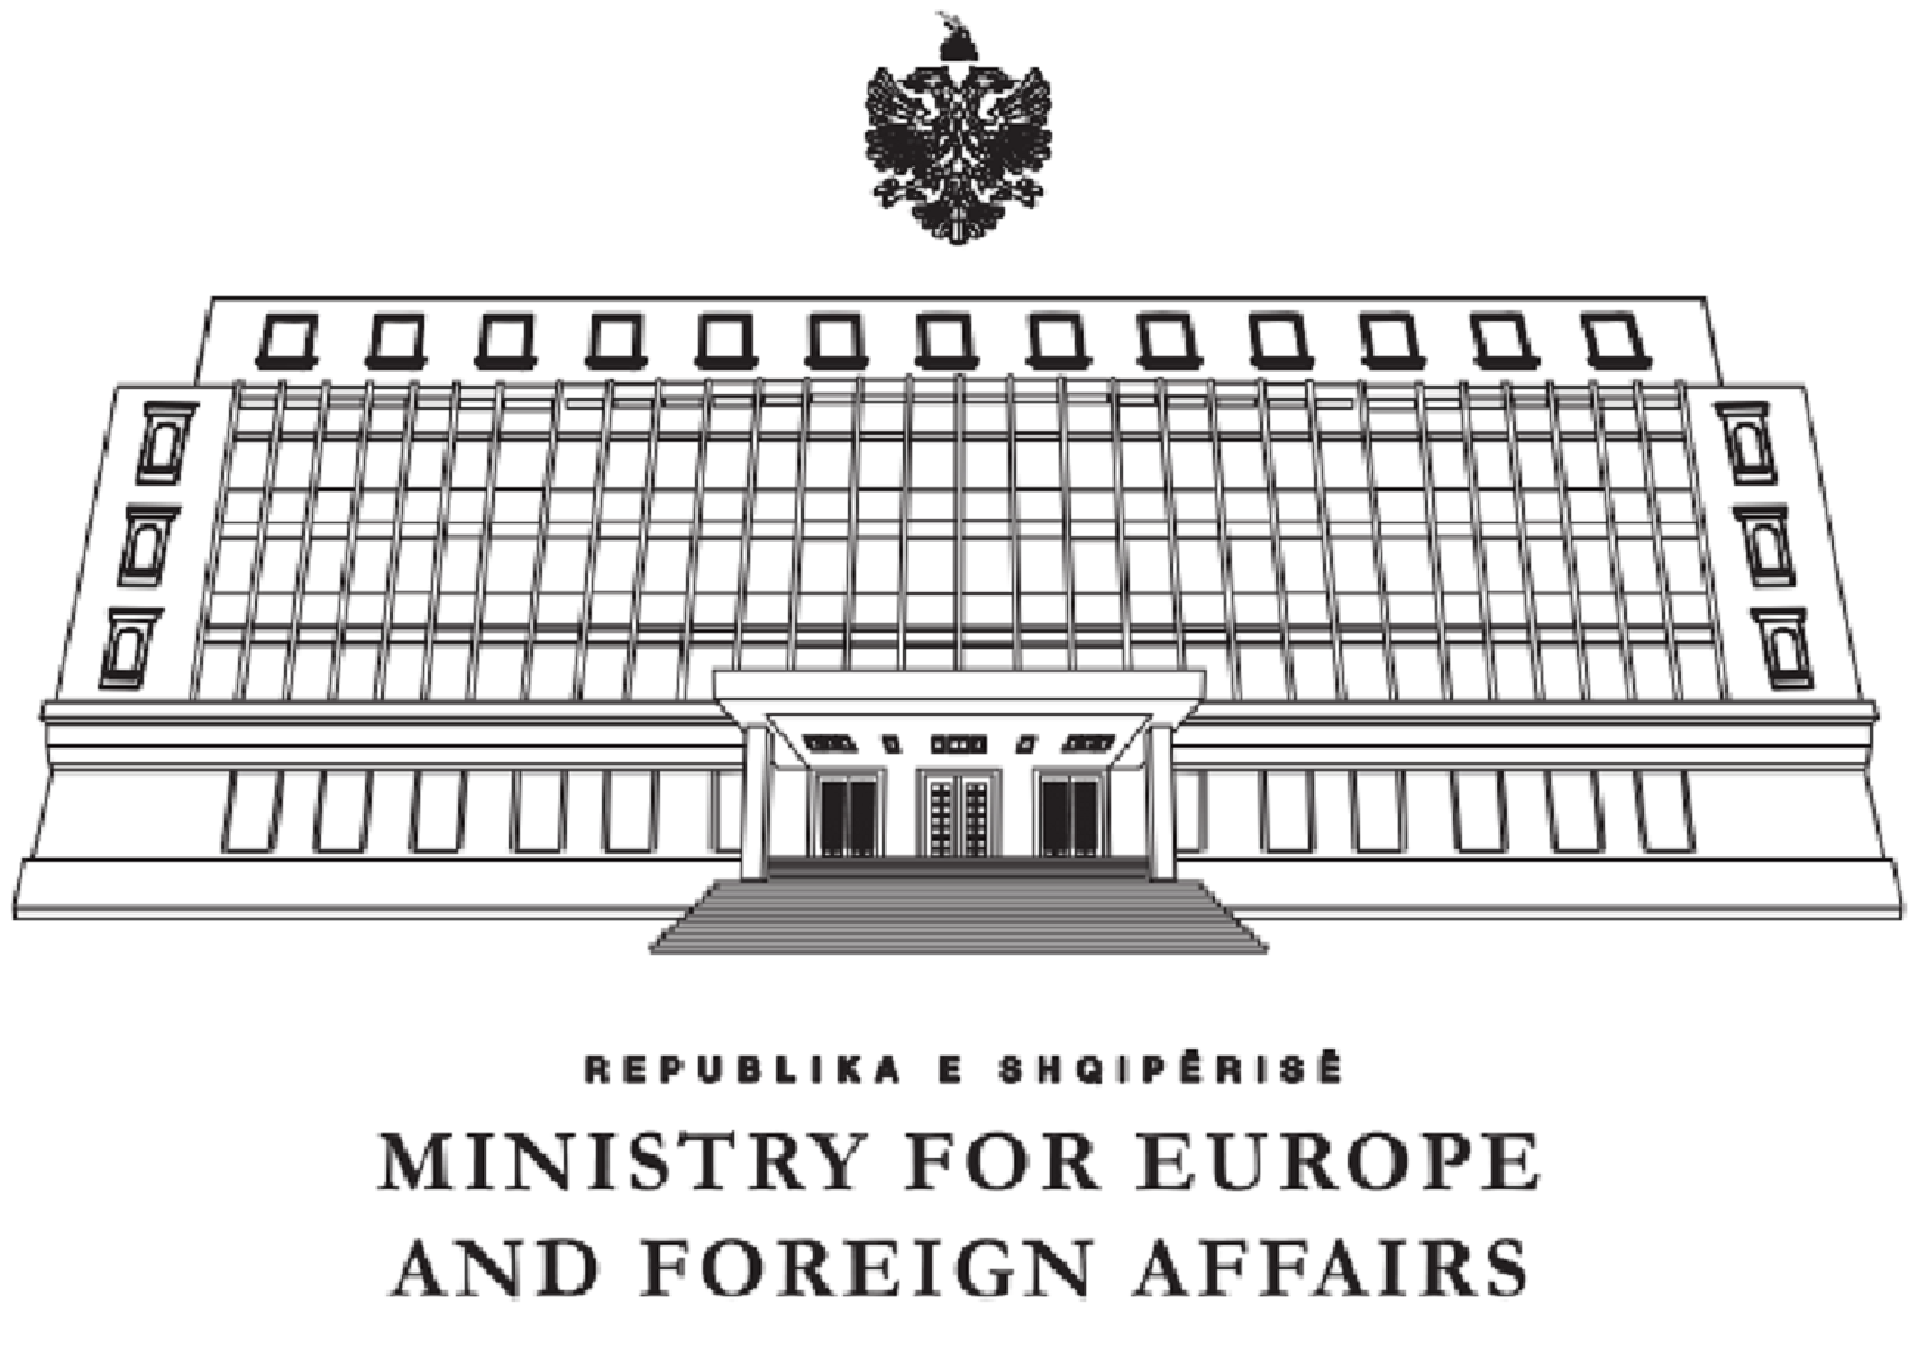 Ministry for Europe and Foreign Affairs, Albania